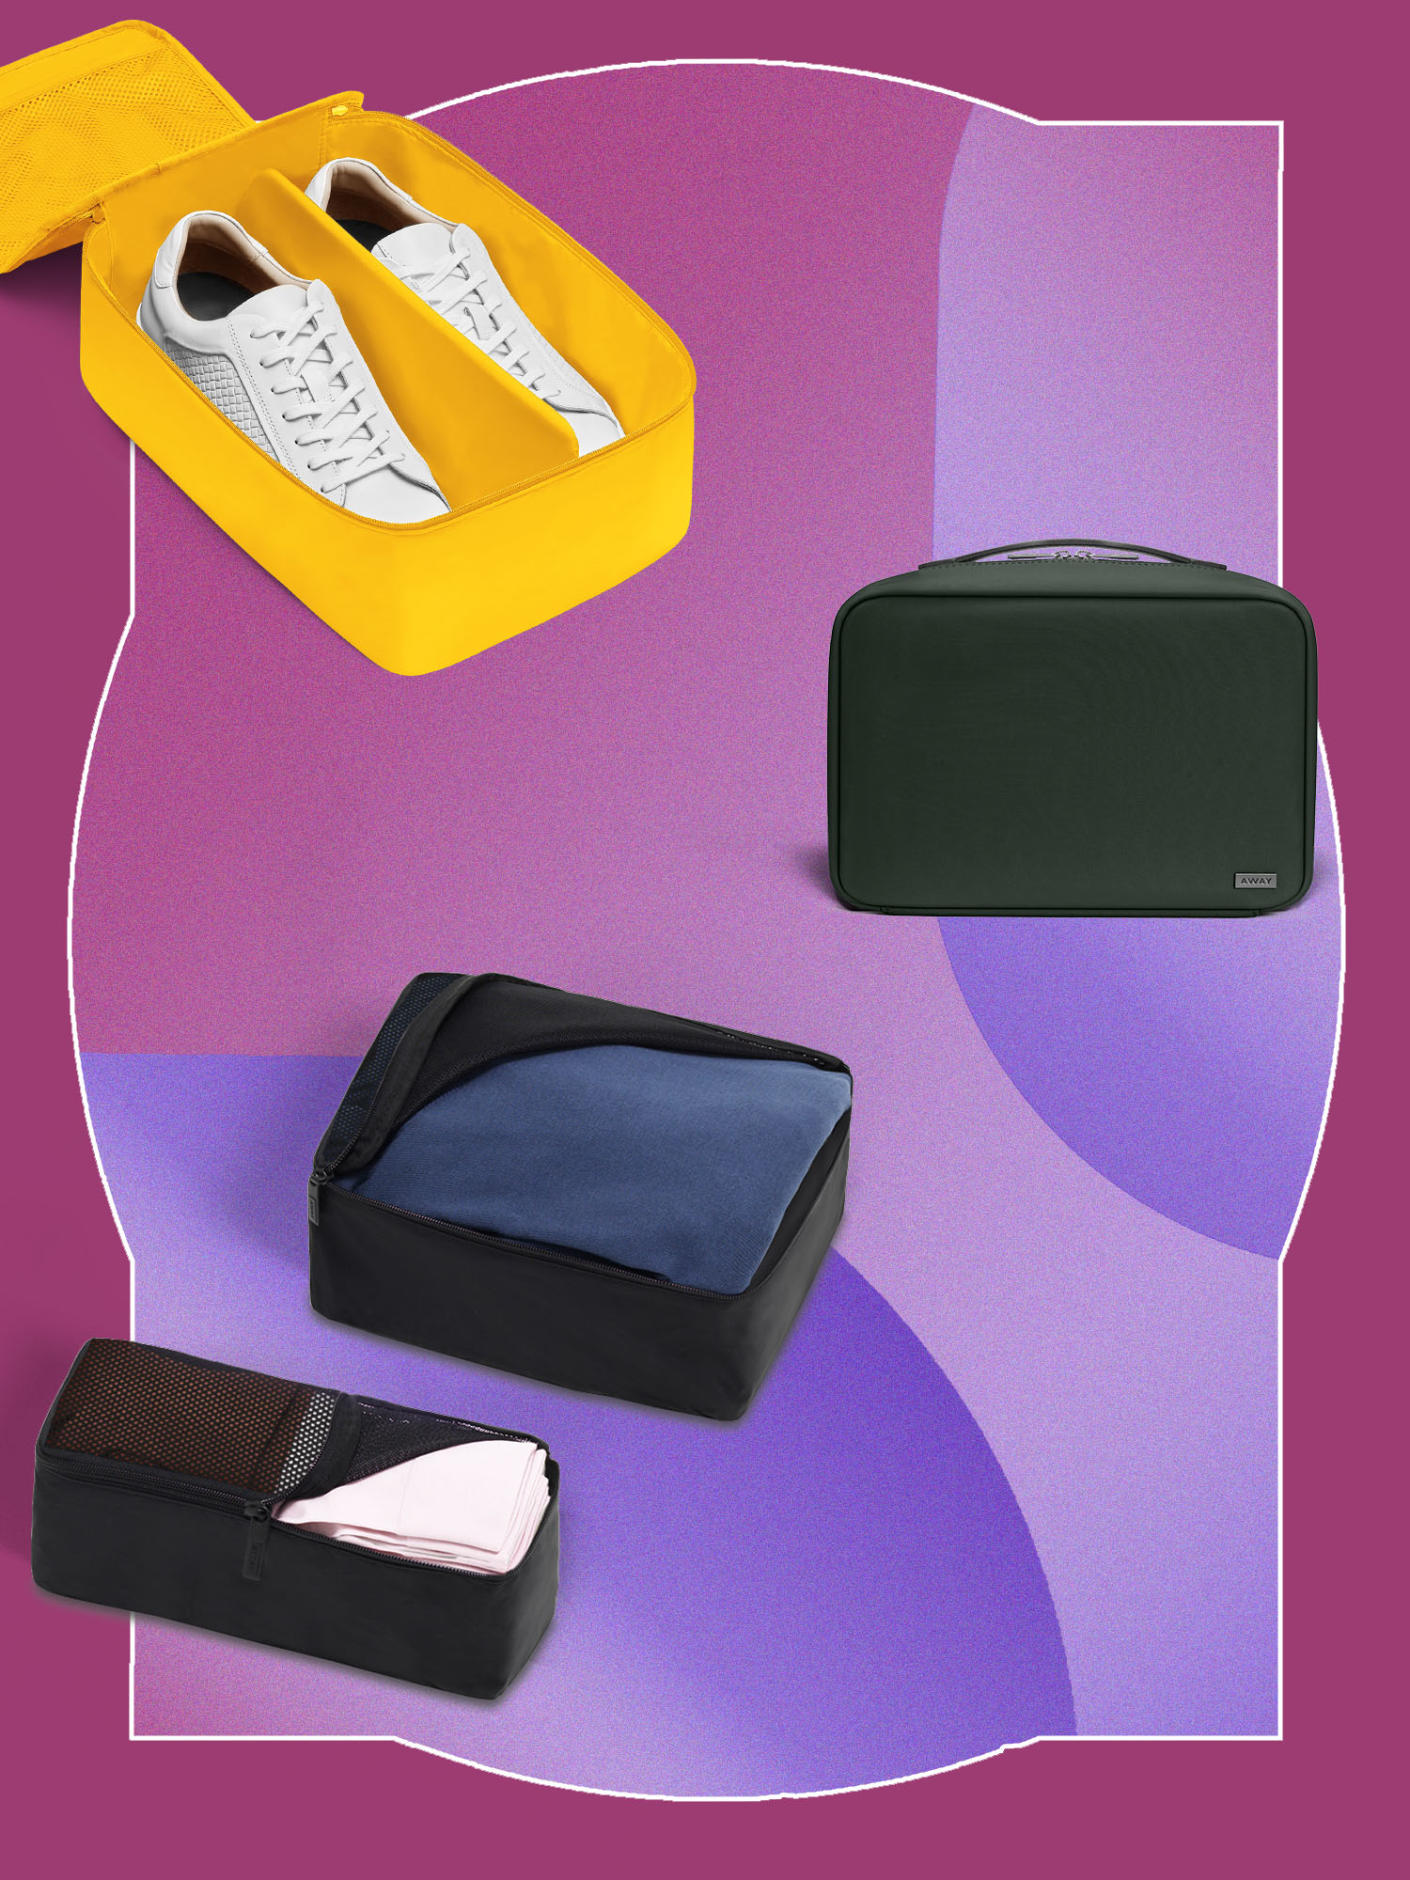 The Hanging Toiletry Bag in Black nylon, The Large Shoe Cube in Golden, and The Insider Packing Cubes (Set of 4) in Black